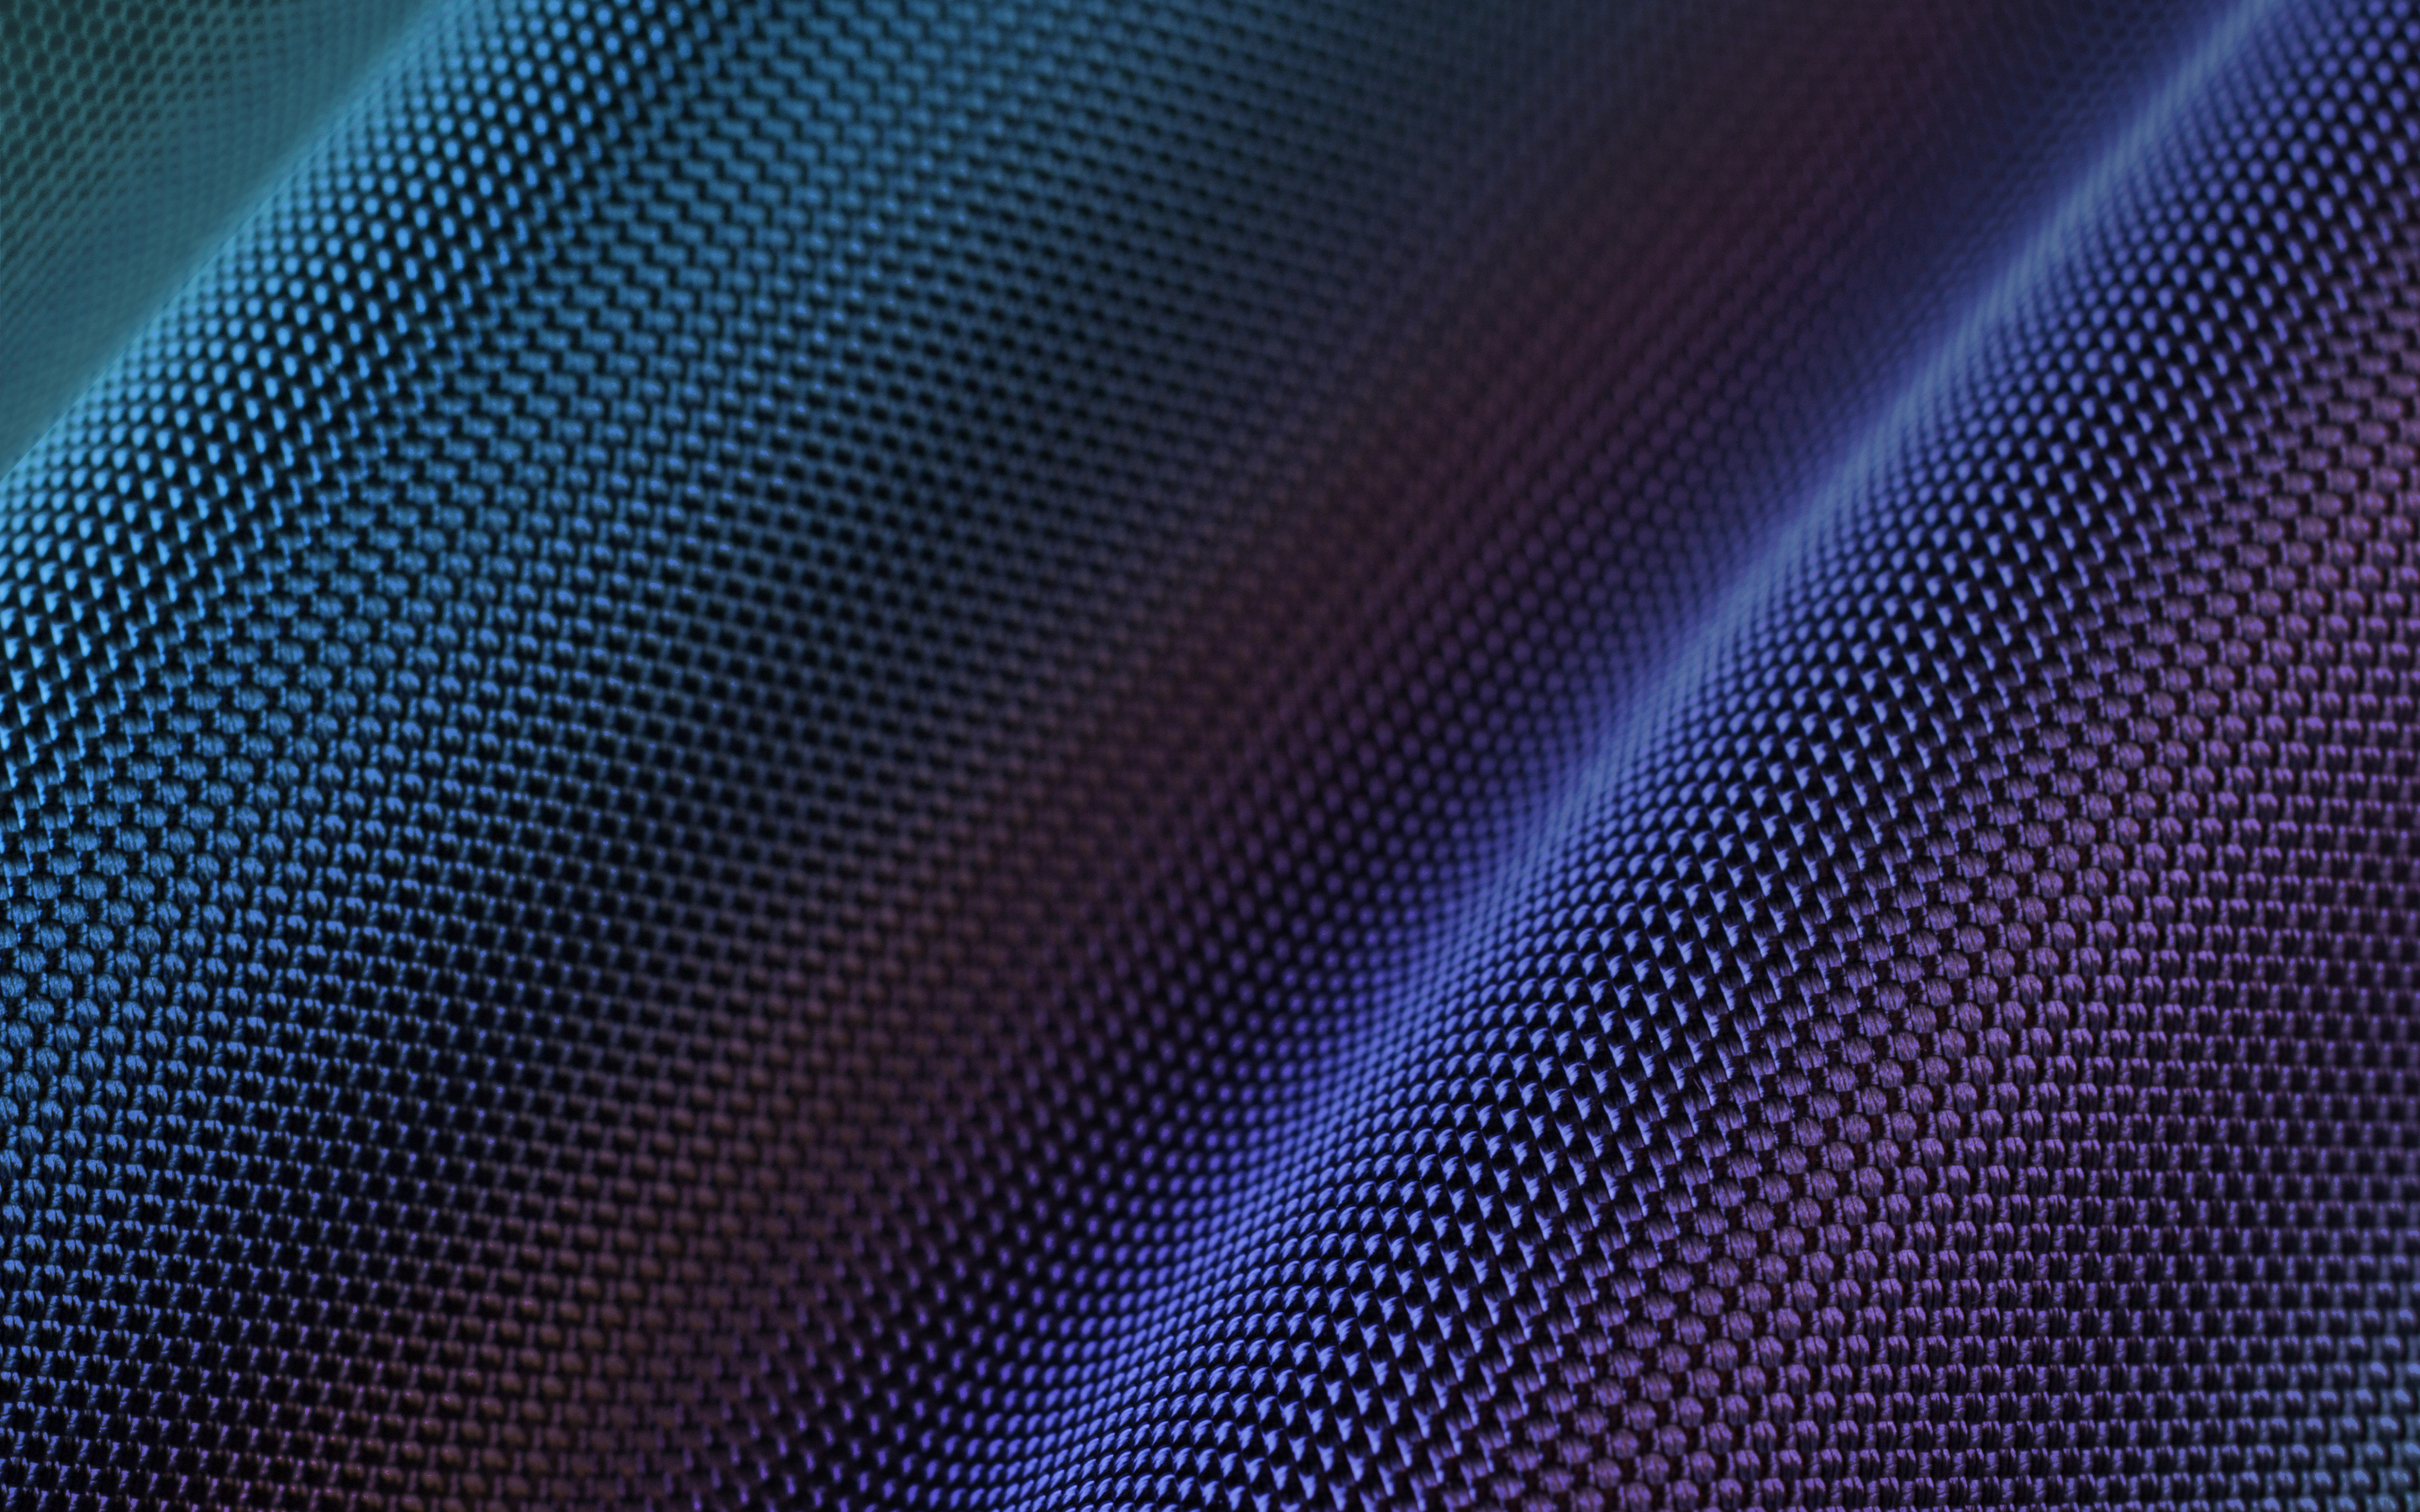 Wallpaper 4k Carbon Fiber Carbon Fiber